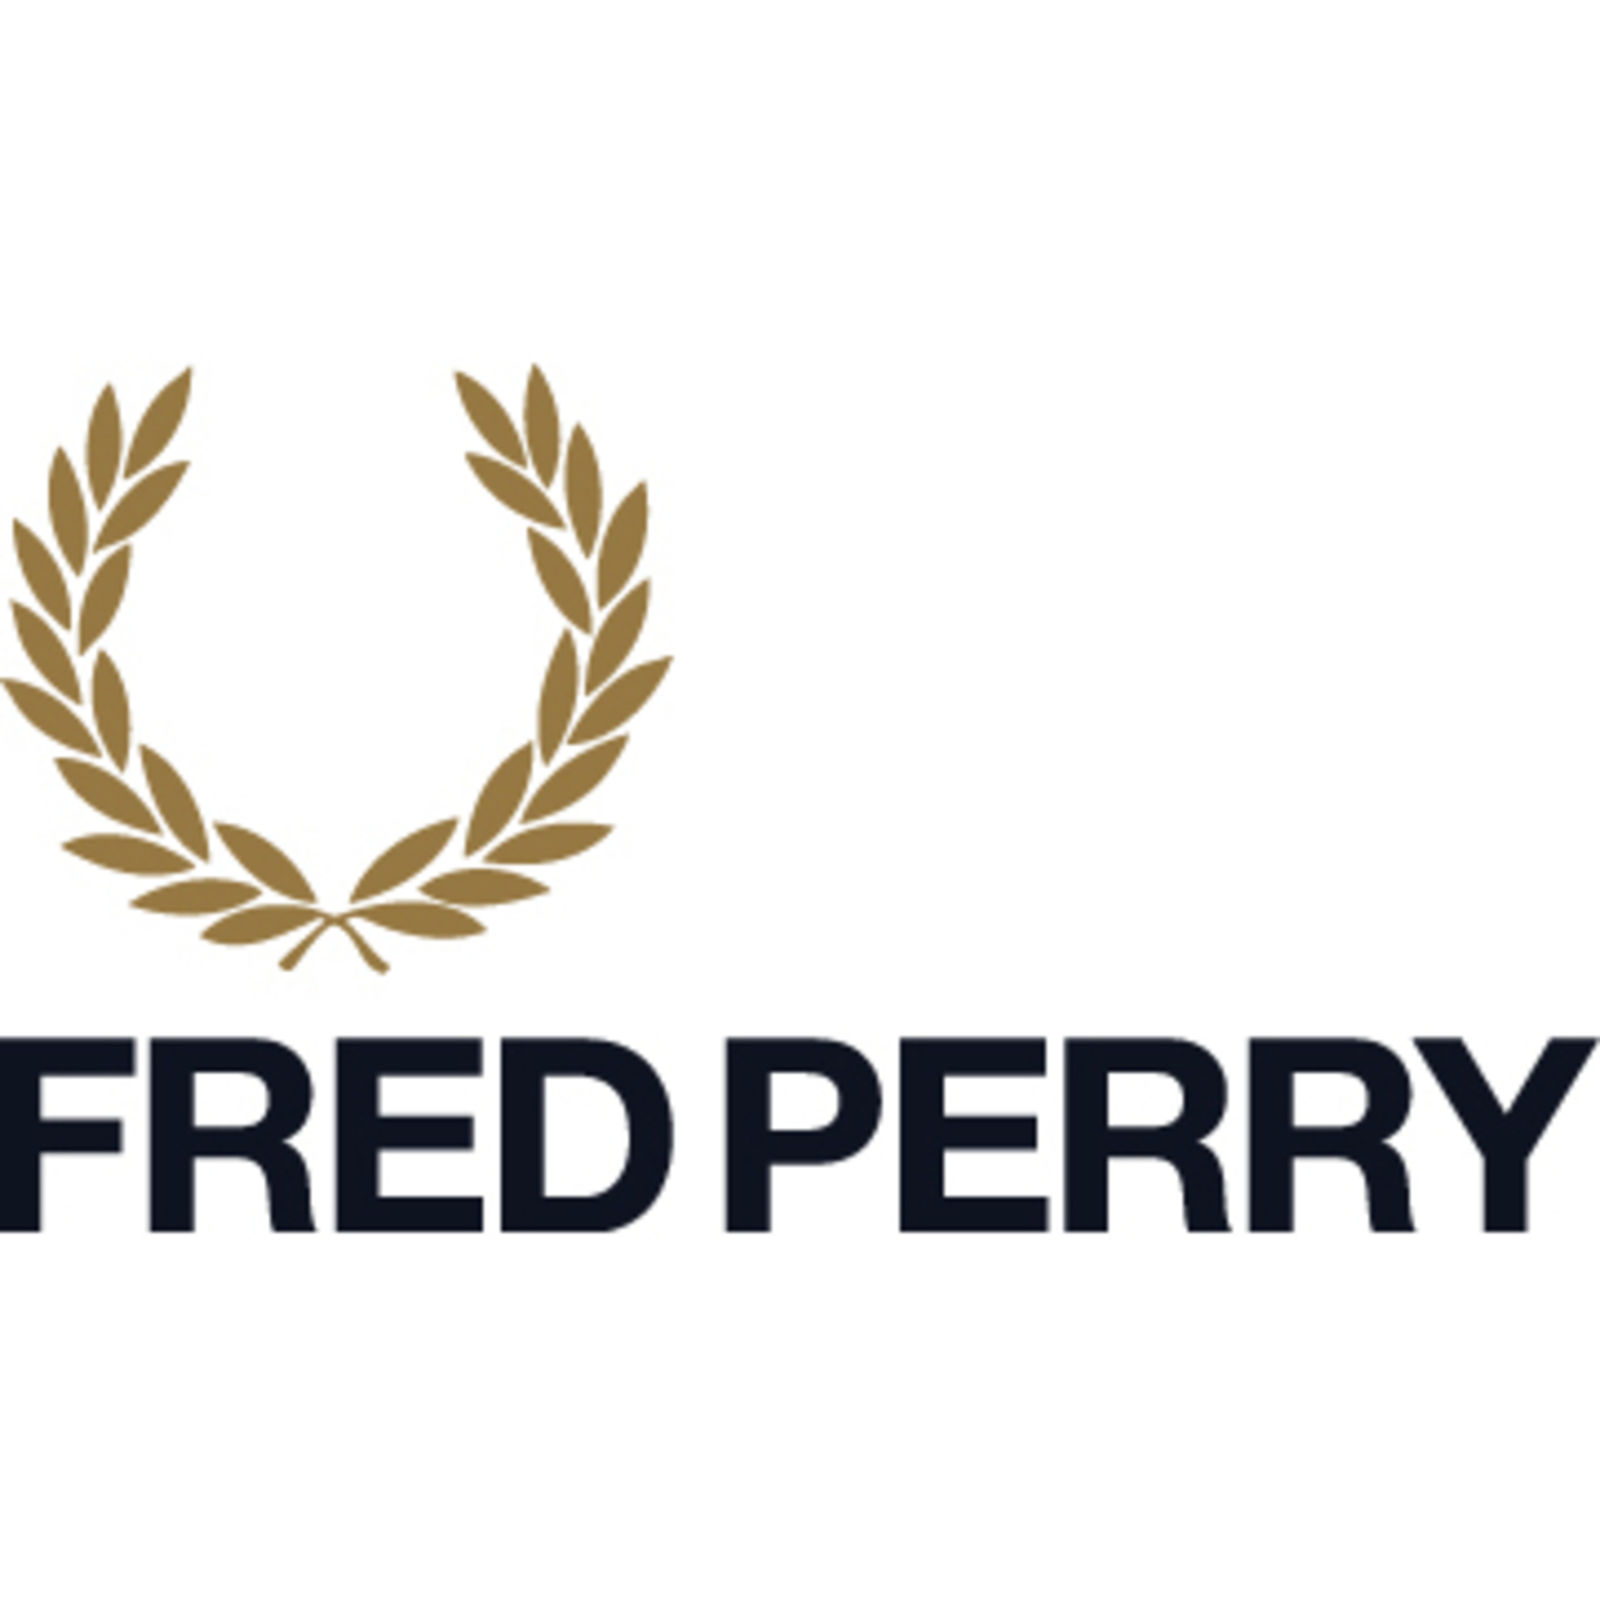 FRED PERRY Authentic | BRADLEY WIGGINS (Bild 1)